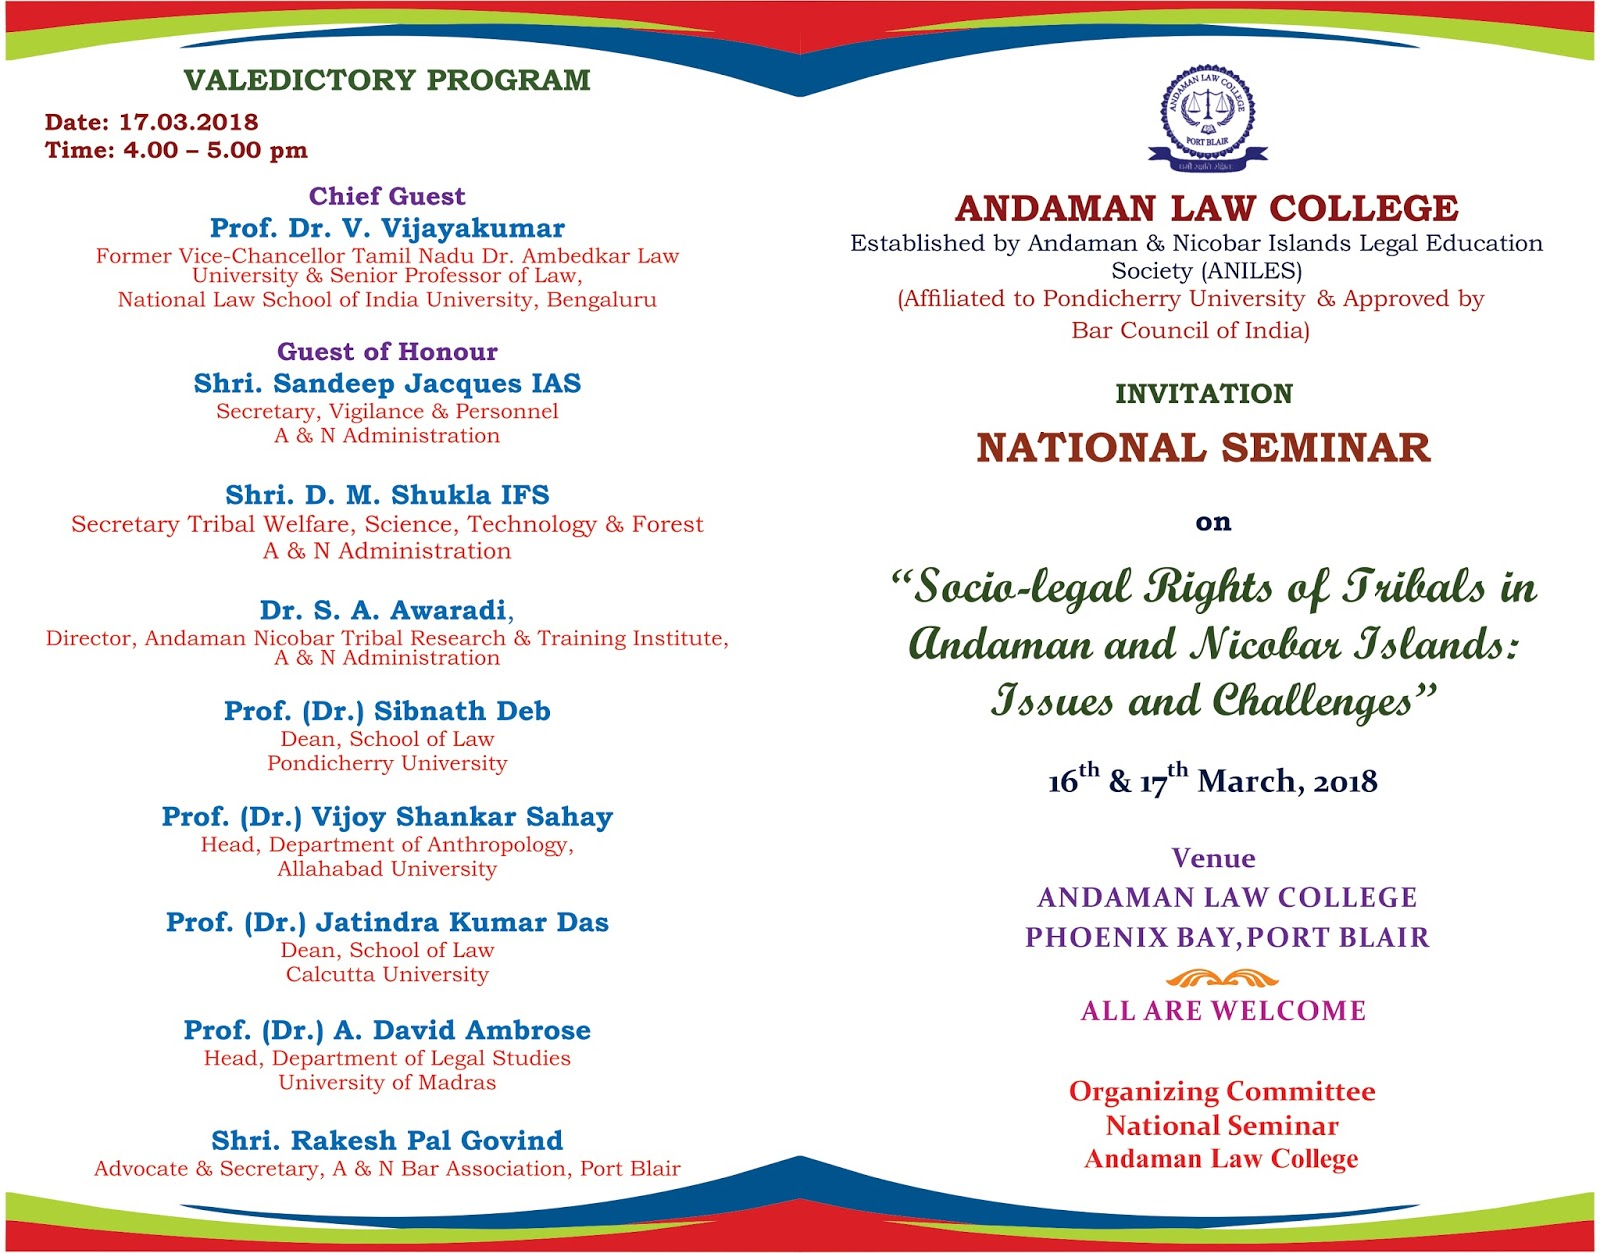 Andaman law college invitation for national seminar at andaman law invitation for national seminar at andaman law college 16 17 march 2018 thecheapjerseys Images